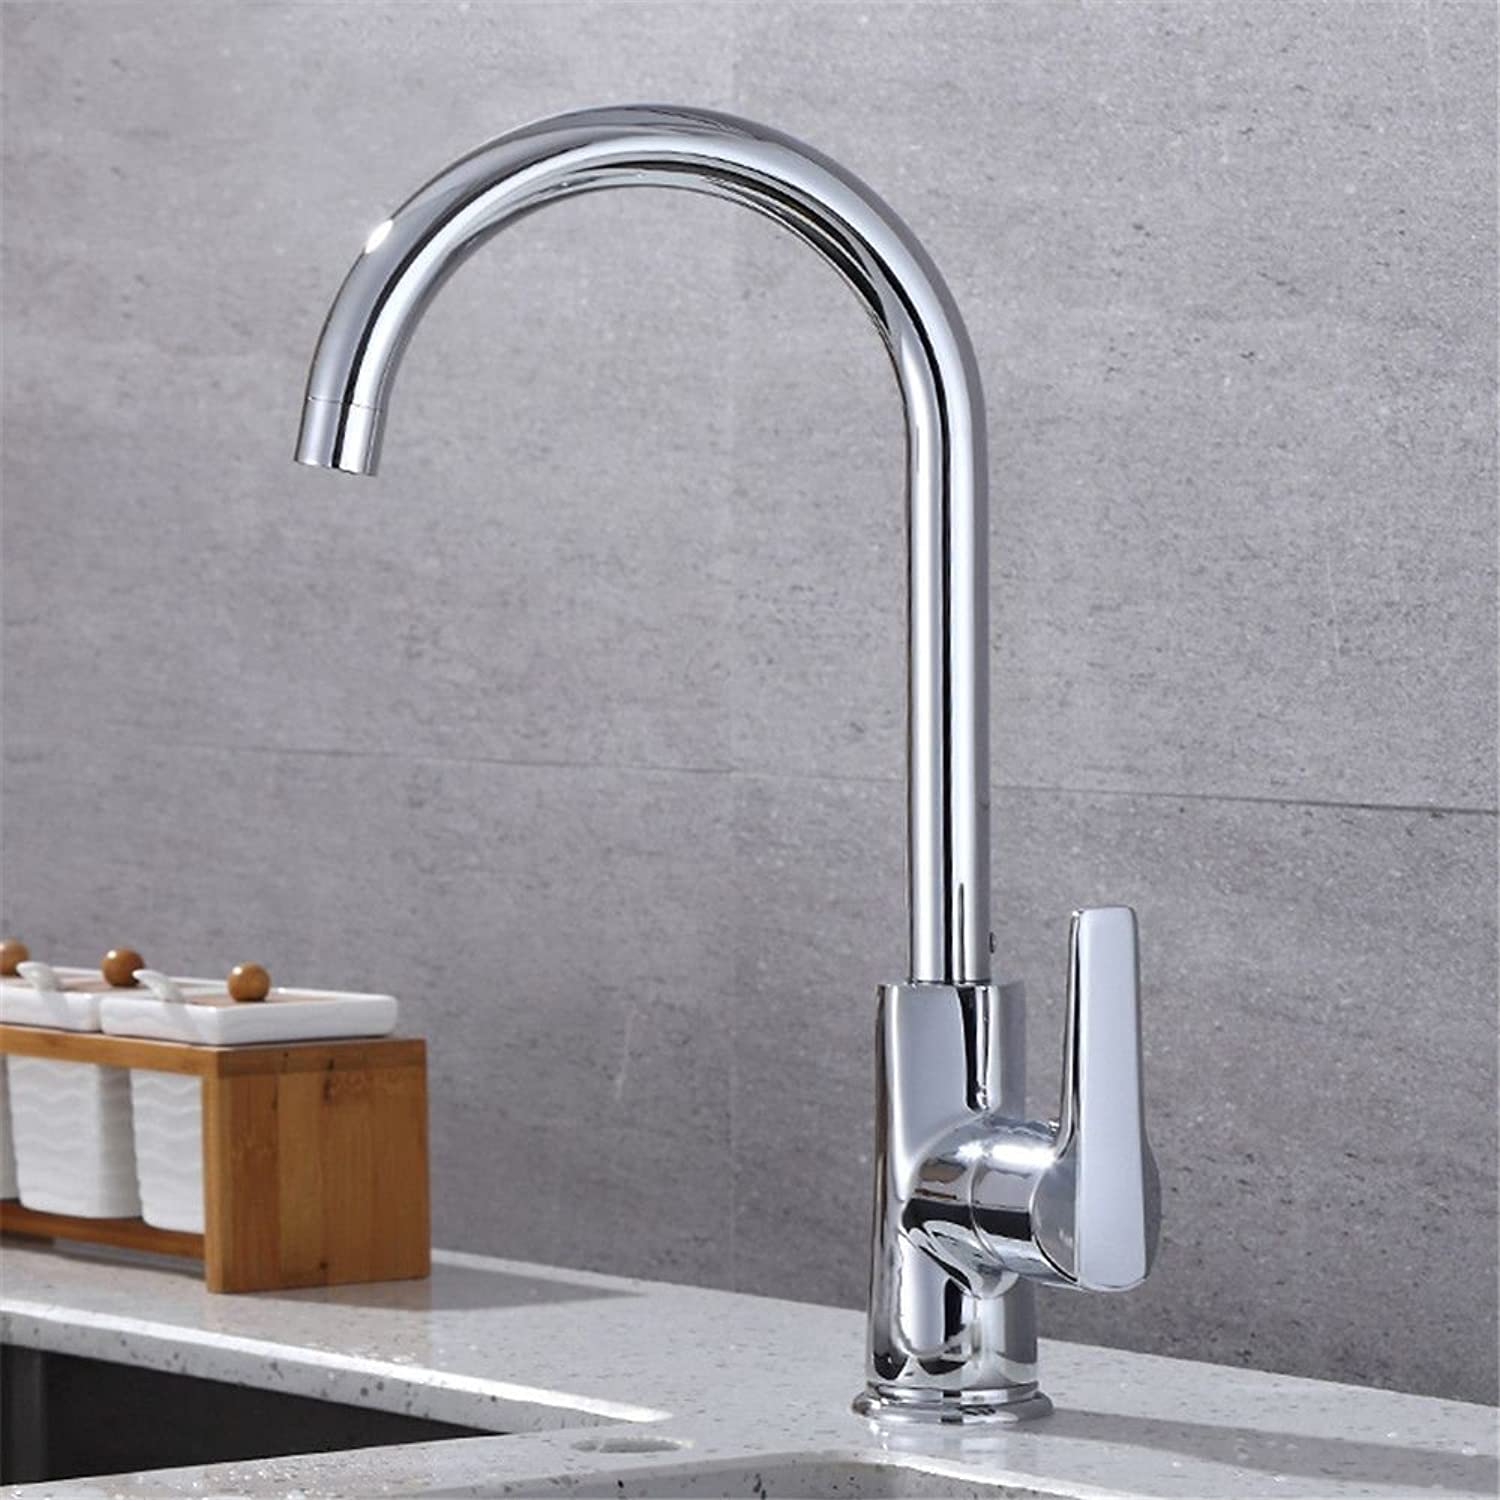 Commercial Single Lever Pull Down Kitchen Sink Faucet Brass Constructed Polished Kitchen Faucet Sink Hot and Cold Water Faucet Can redate The Sink Faucet Copper Faucet